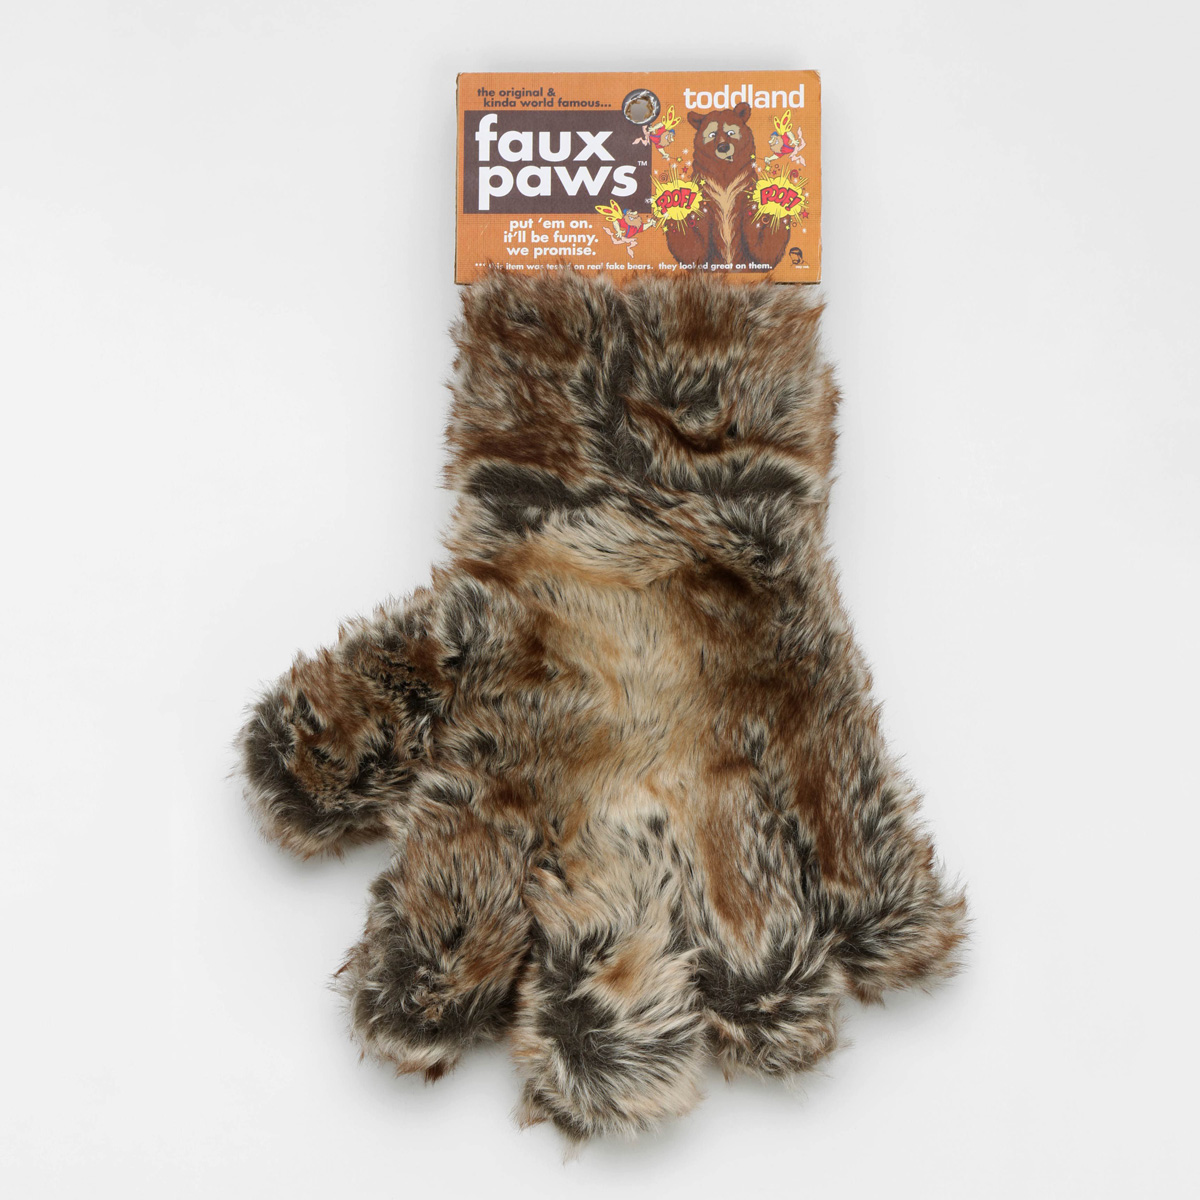 Faux Paws Giant Wearable Furry Bear The Green Head